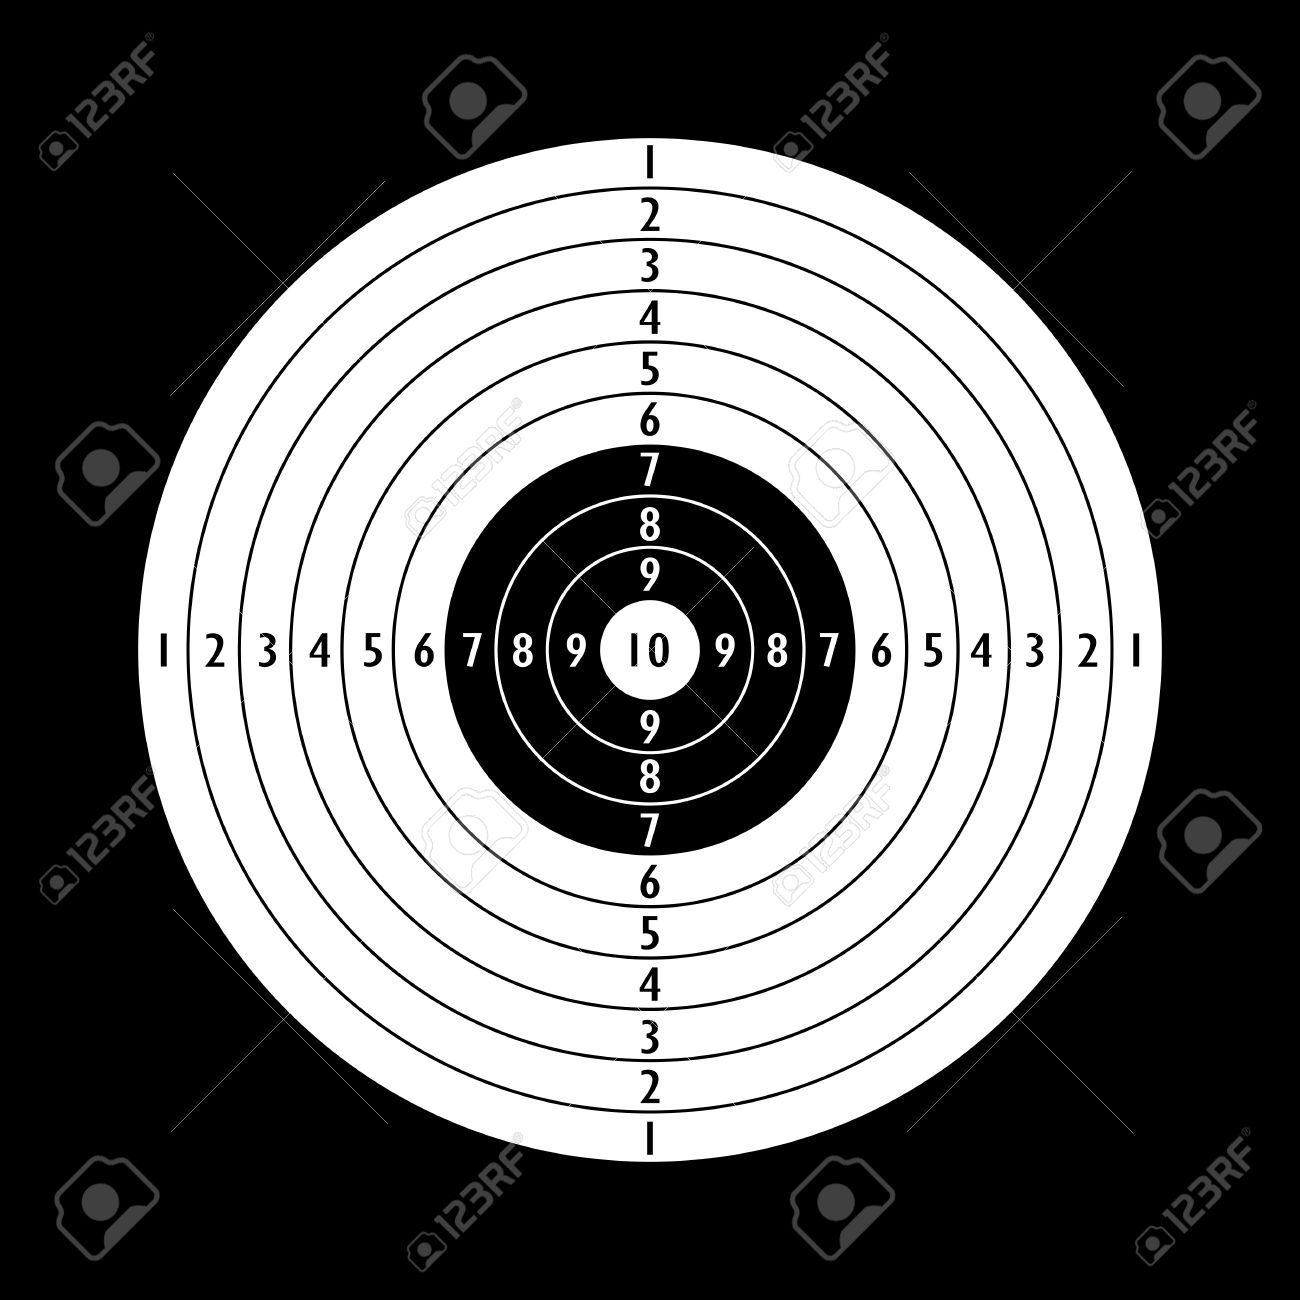 blank shooting target template royalty free cliparts vectors and